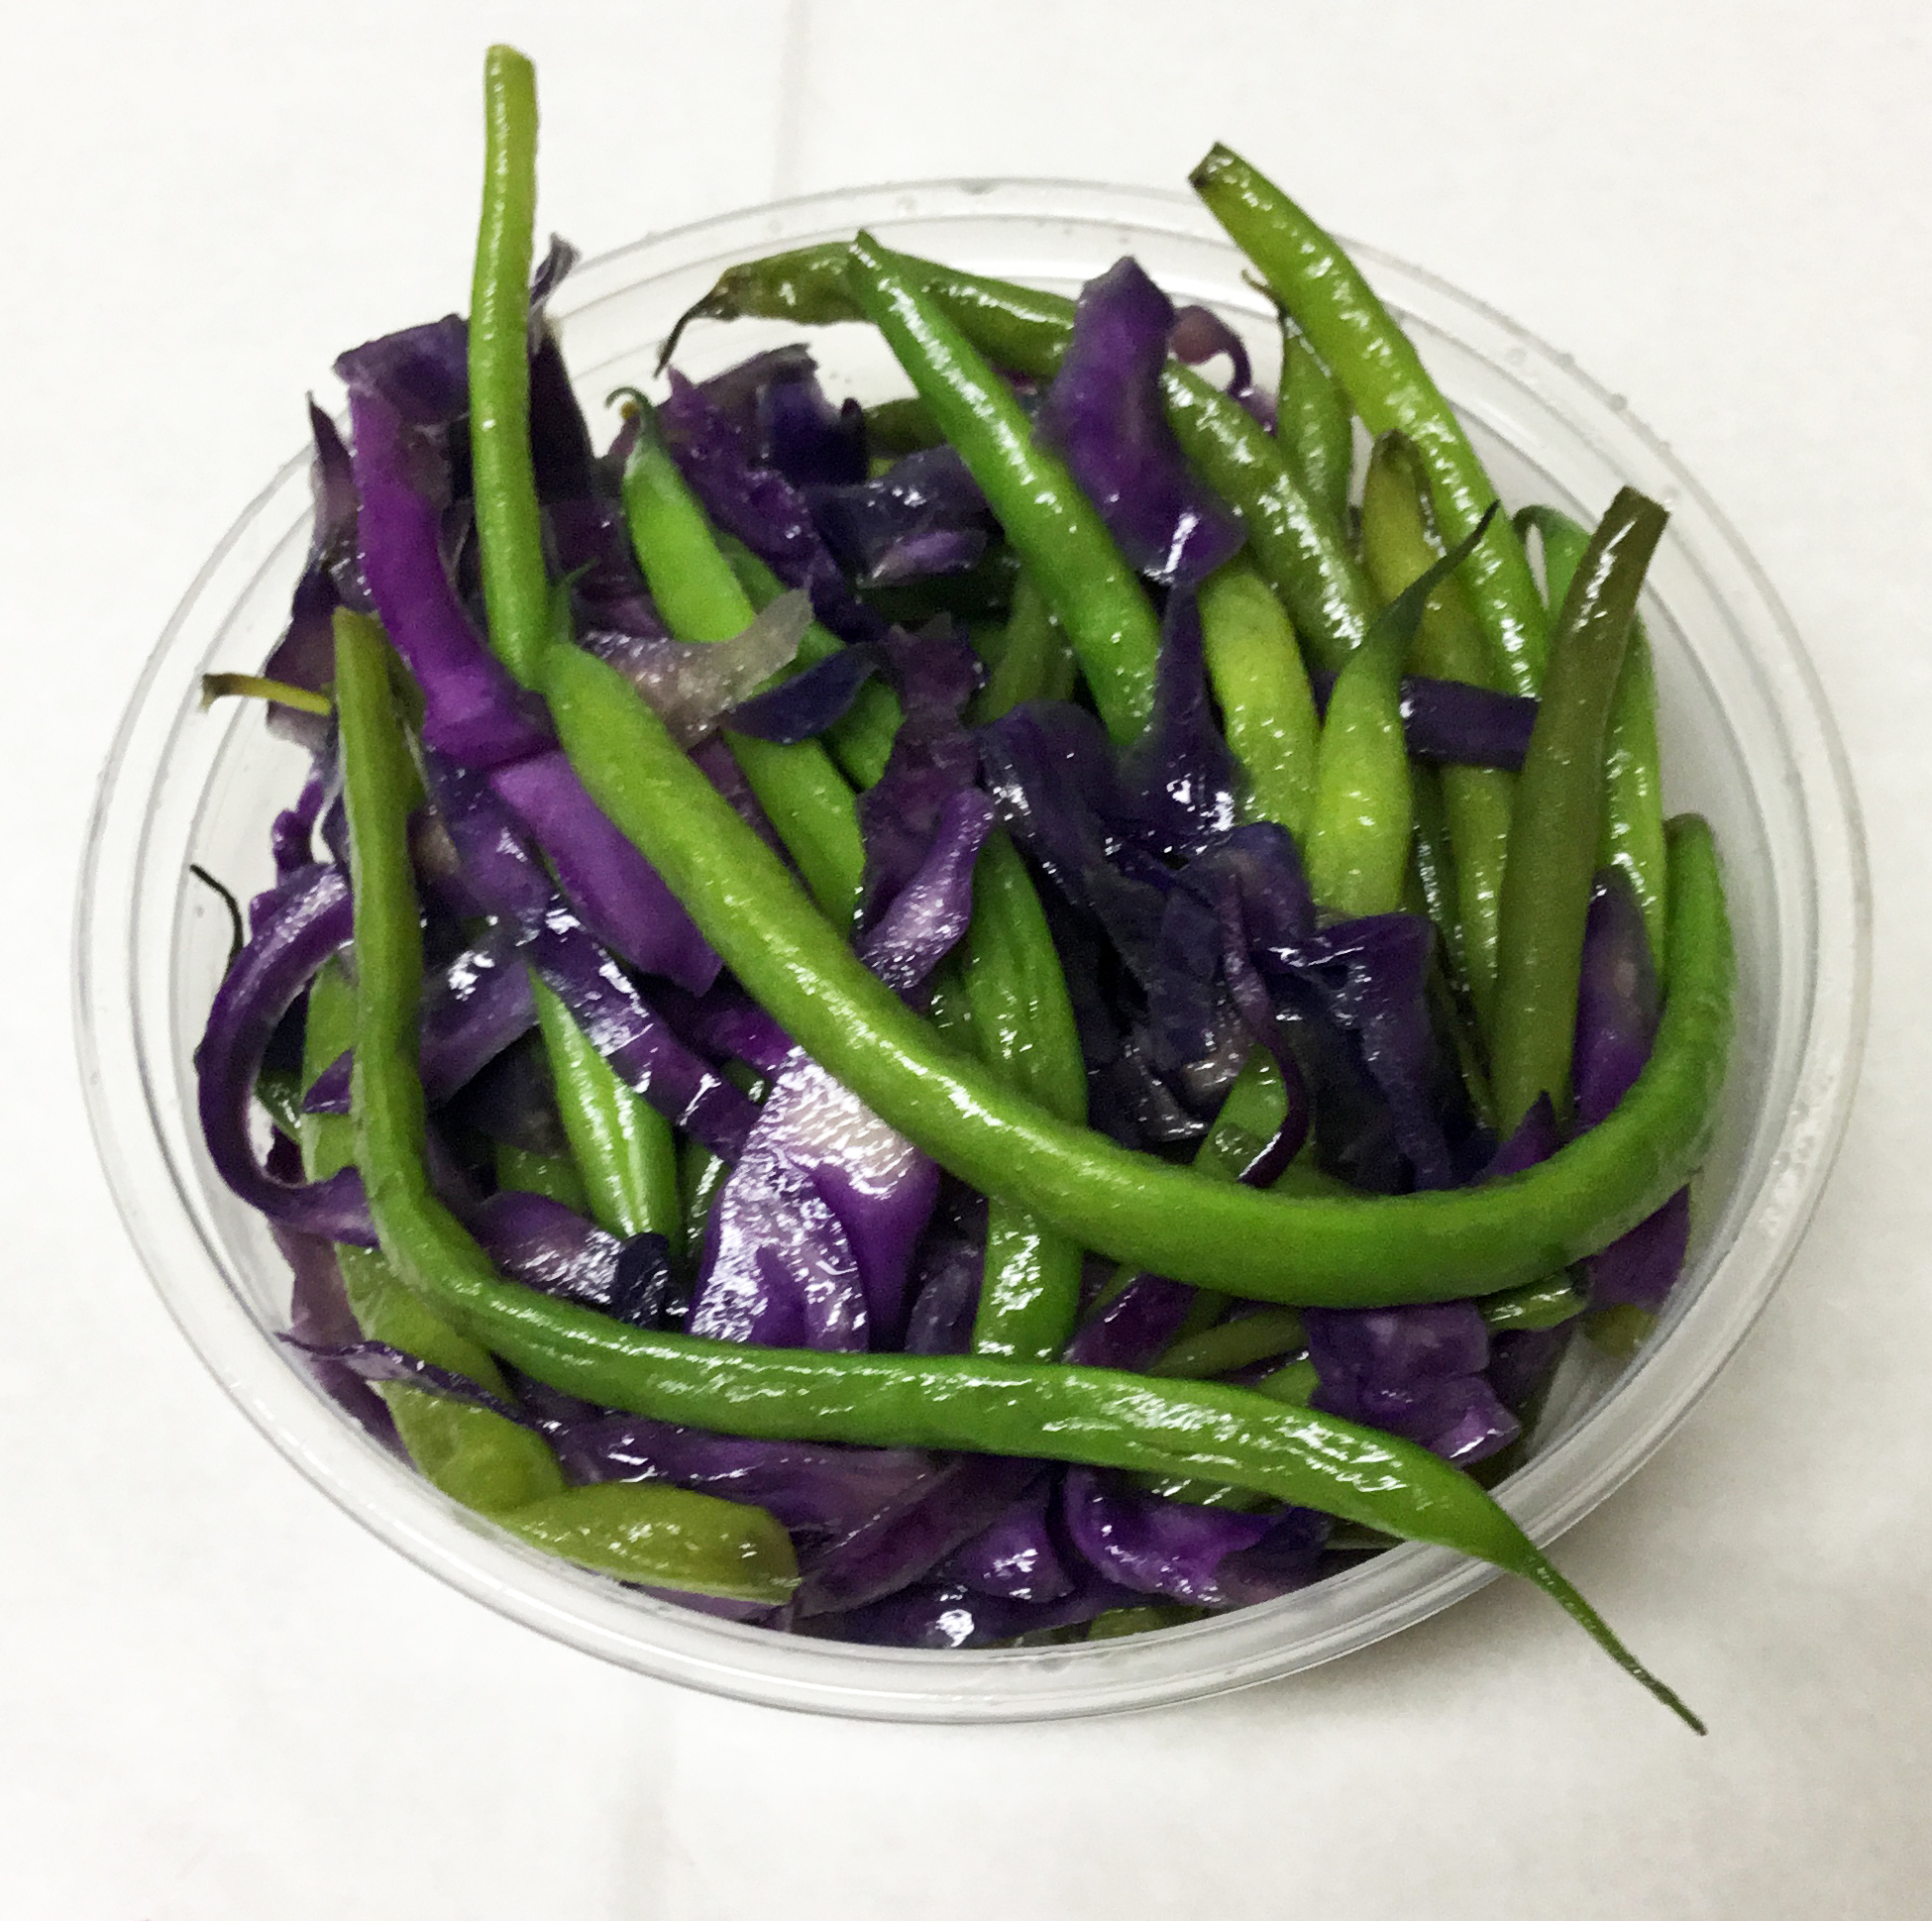 Haricots-vert-and-red-cabbage-water-saute.jpg